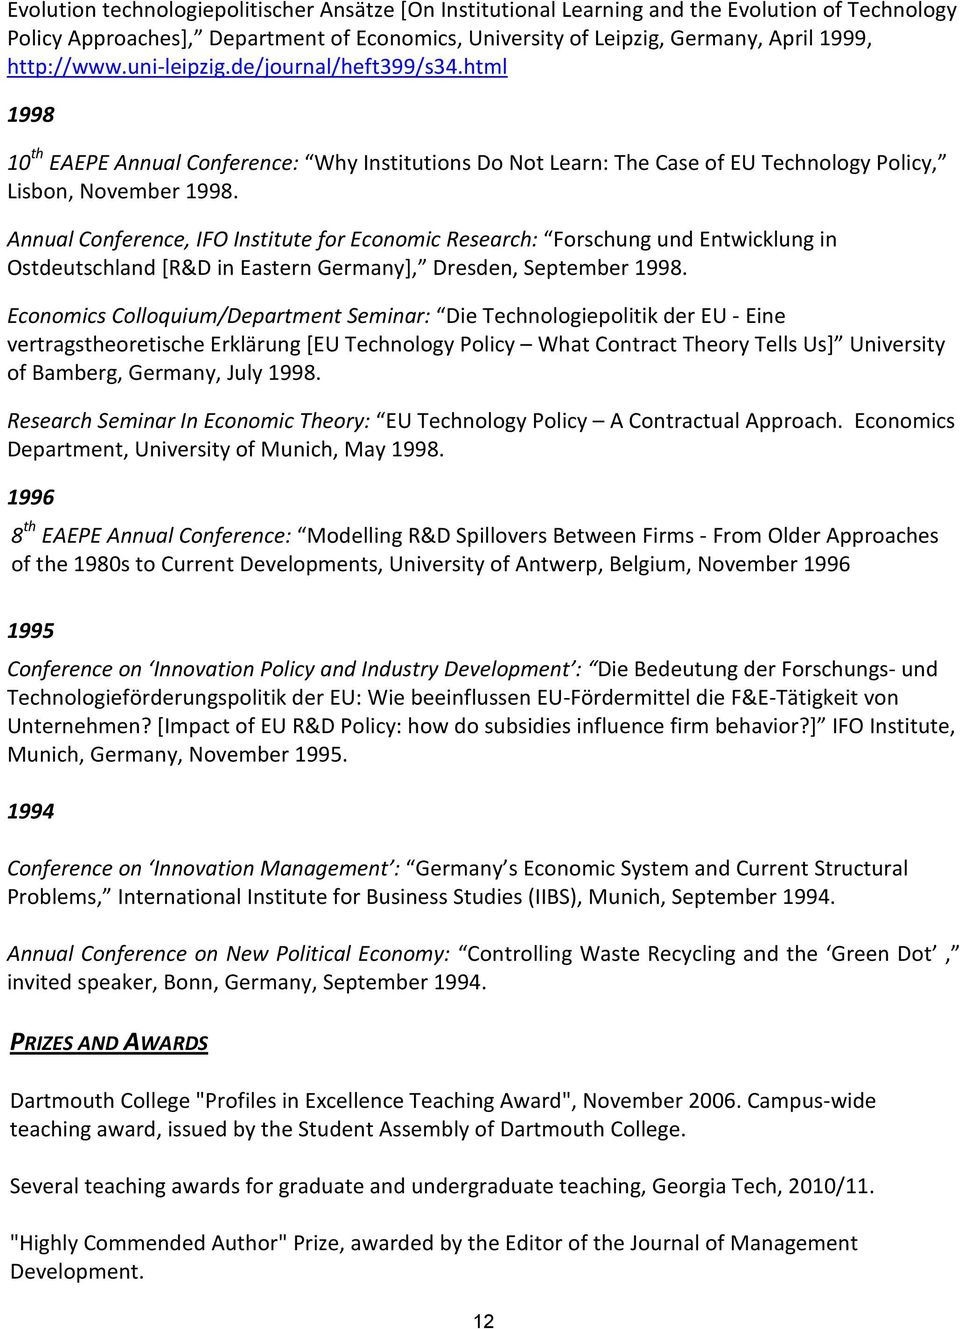 Annual Conference, IFO Institute for Economic Research: Forschung und Entwicklung in Ostdeutschland [R&D in Eastern Germany], Dresden, September 1998.